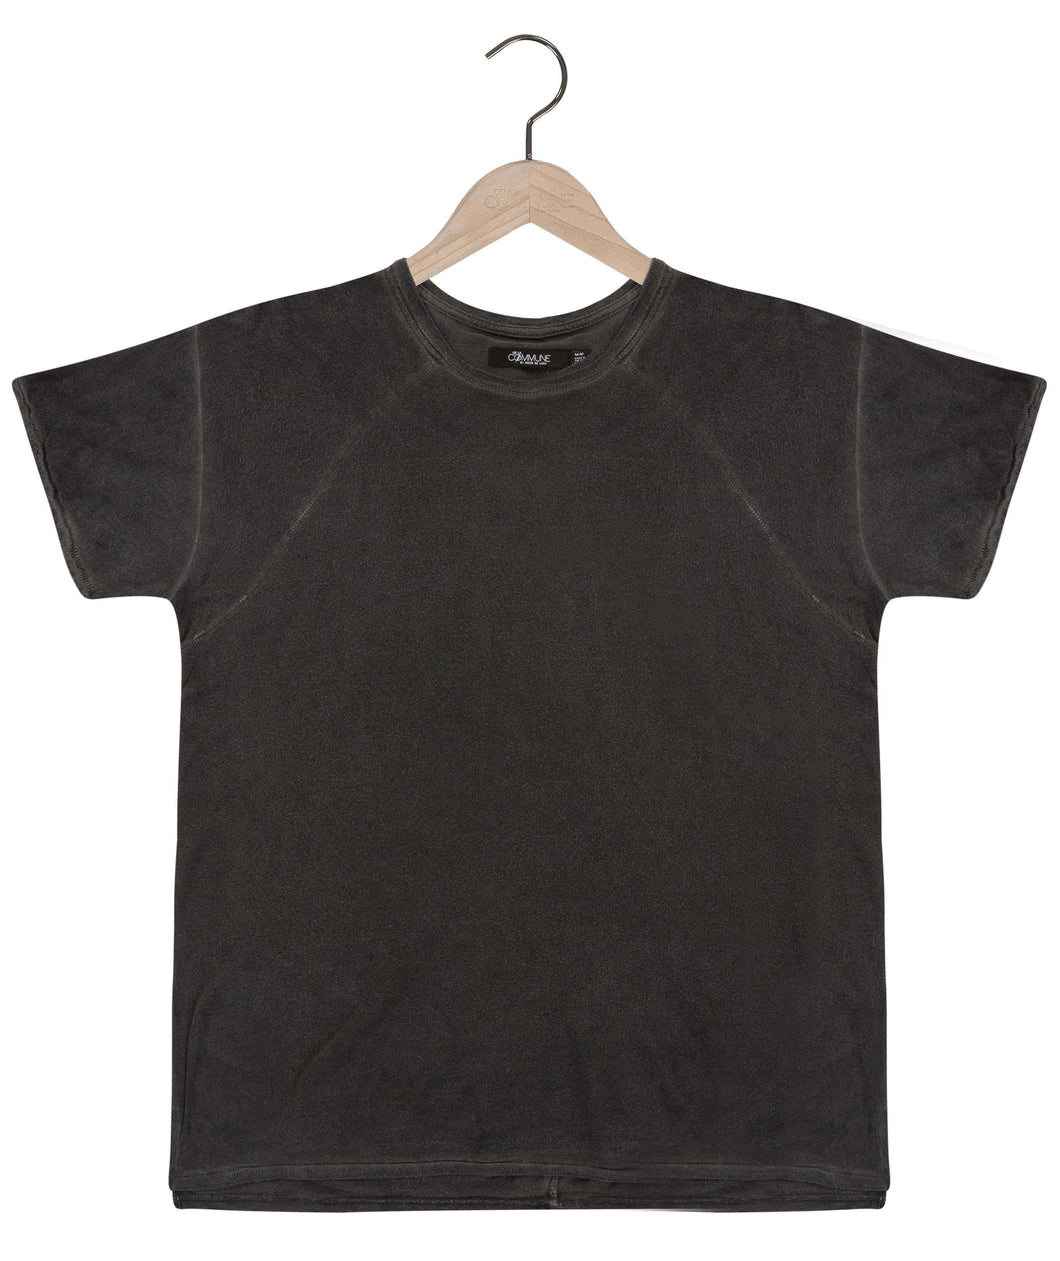 Tigran bamboo tee in graphite grey Top DE LA COMMUNE